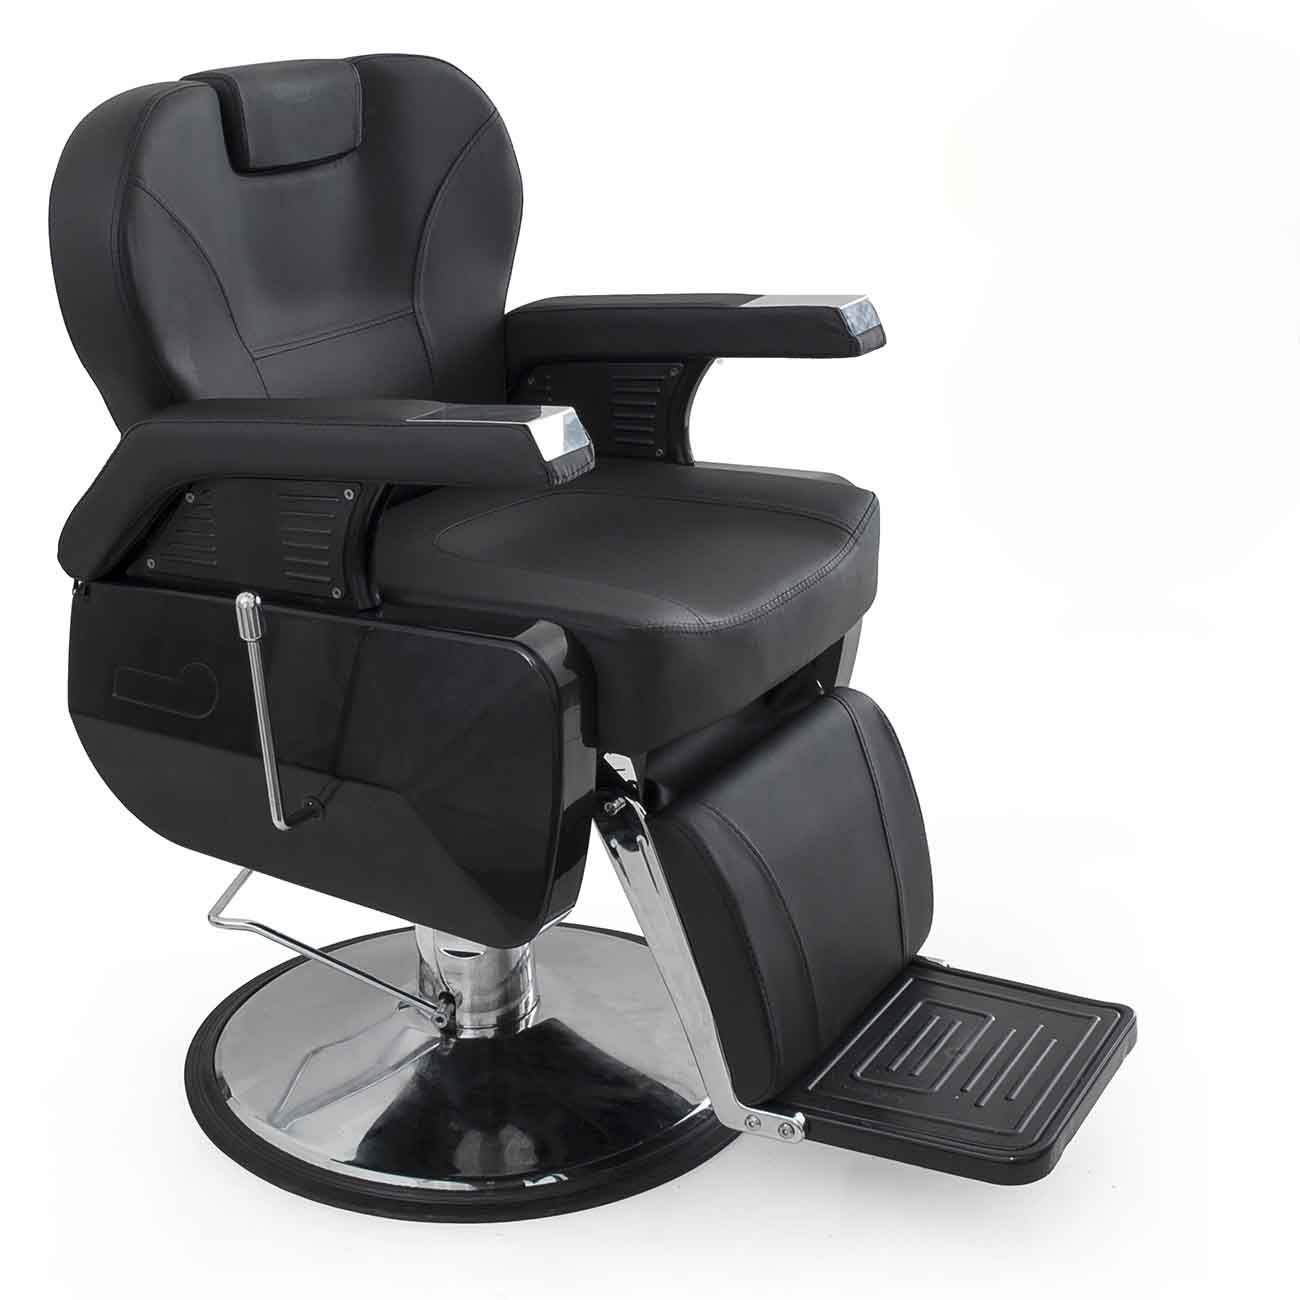 Black salon chairs - Bellavie Deluxe Hydraulic Barber Chair Beauty Shop Reclining